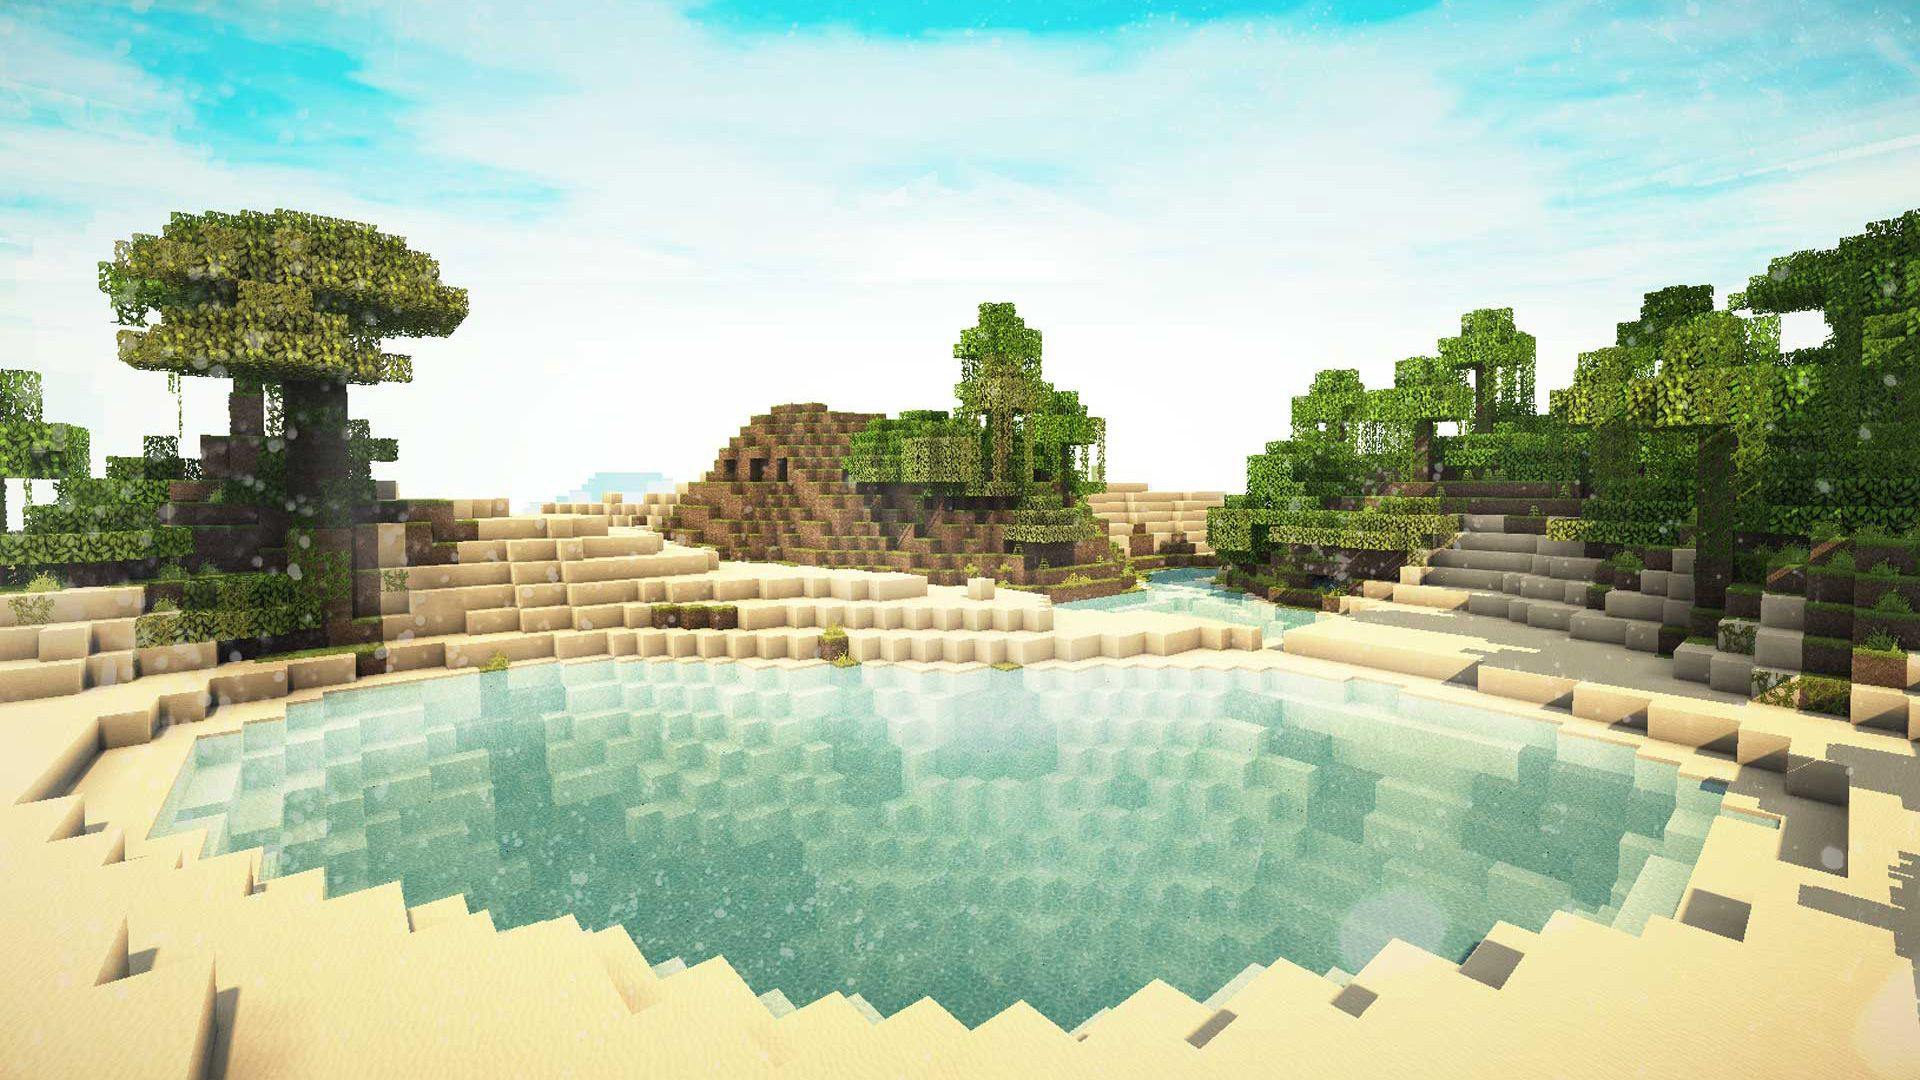 1920x1080 Landscape Minecraft Shaders Wallpaper And Background